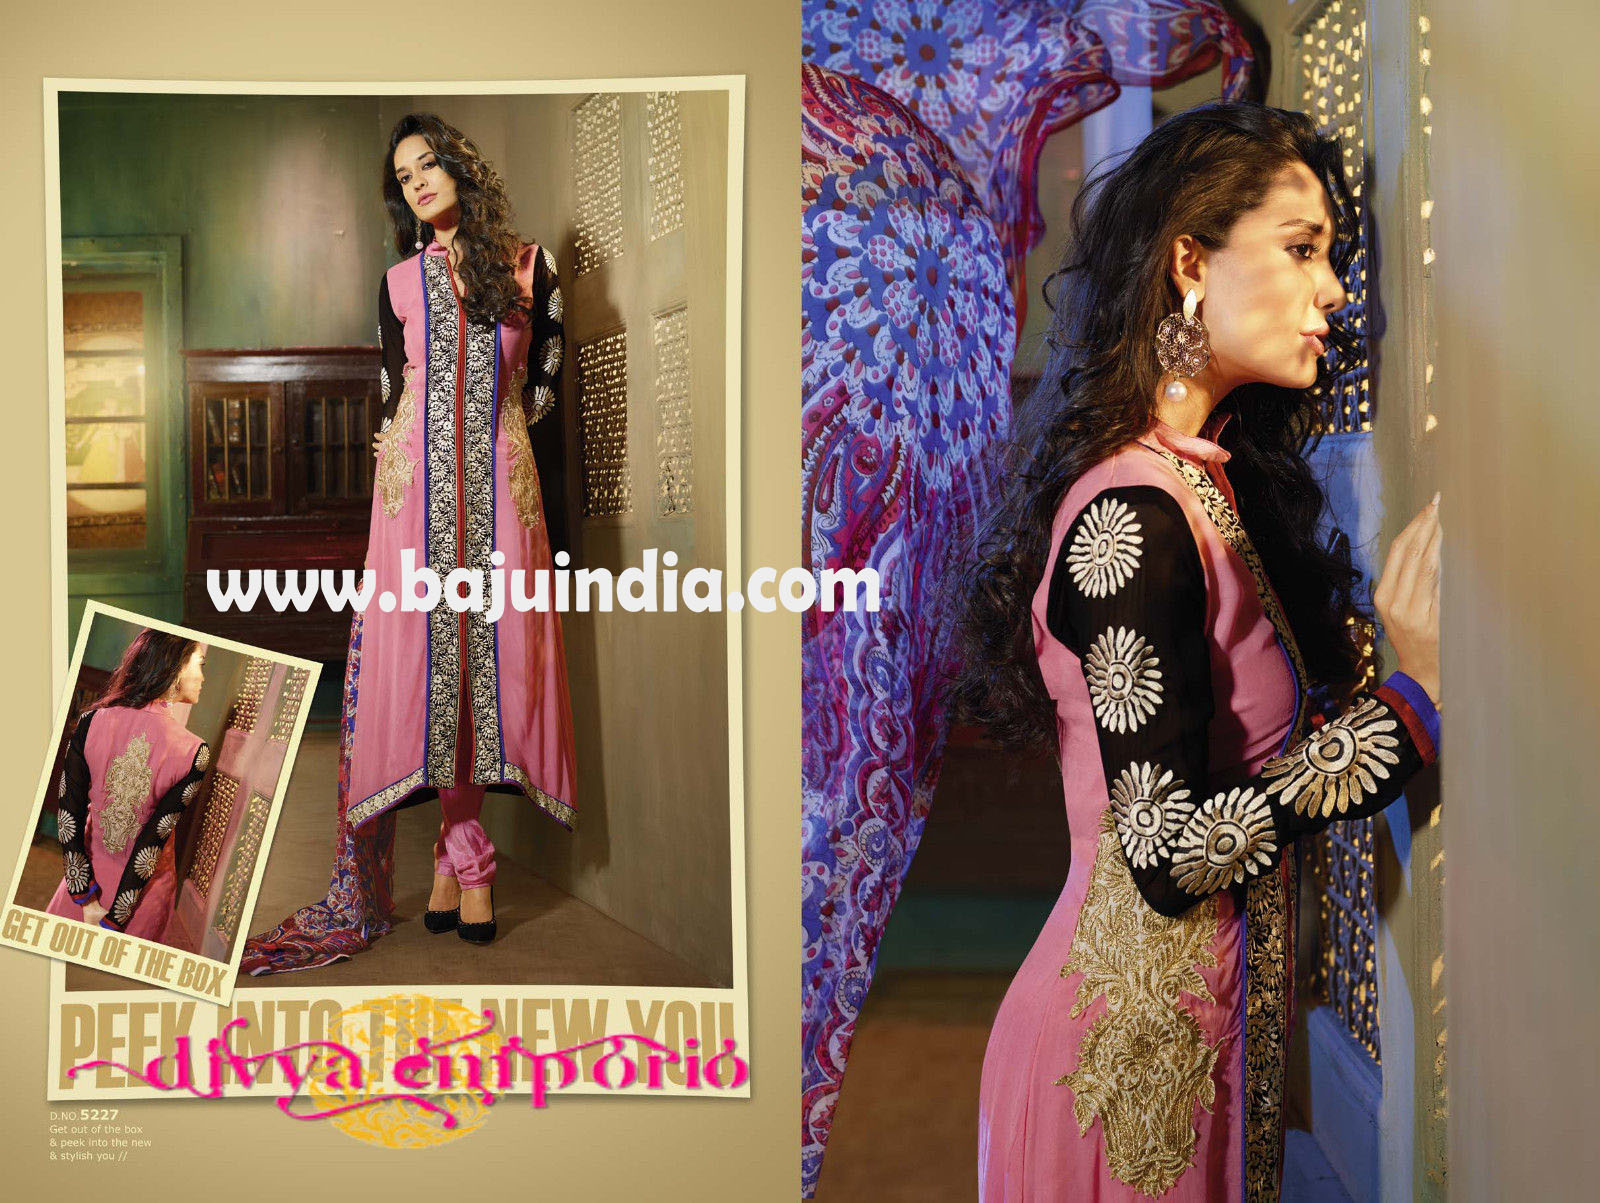 Baju india 2015 310dv bajuindia com bajuindia com Baju gamis model india 2015